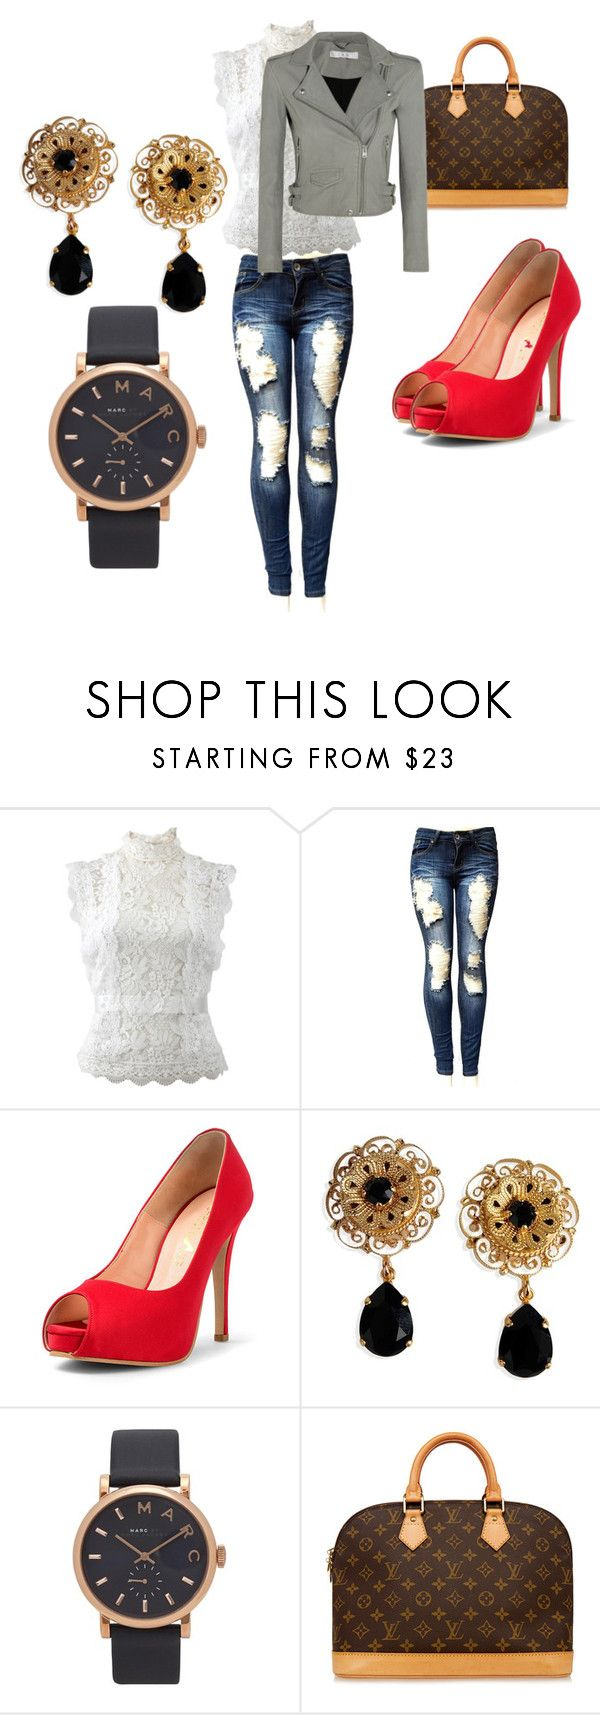 """""""21st Birthday Outfit #2"""" by jelly12-861 ❤ liked on Polyvore featuring Oscar de la Renta, Dolce&Gabbana, Marc Jacobs, Louis Vuitton and IRO"""